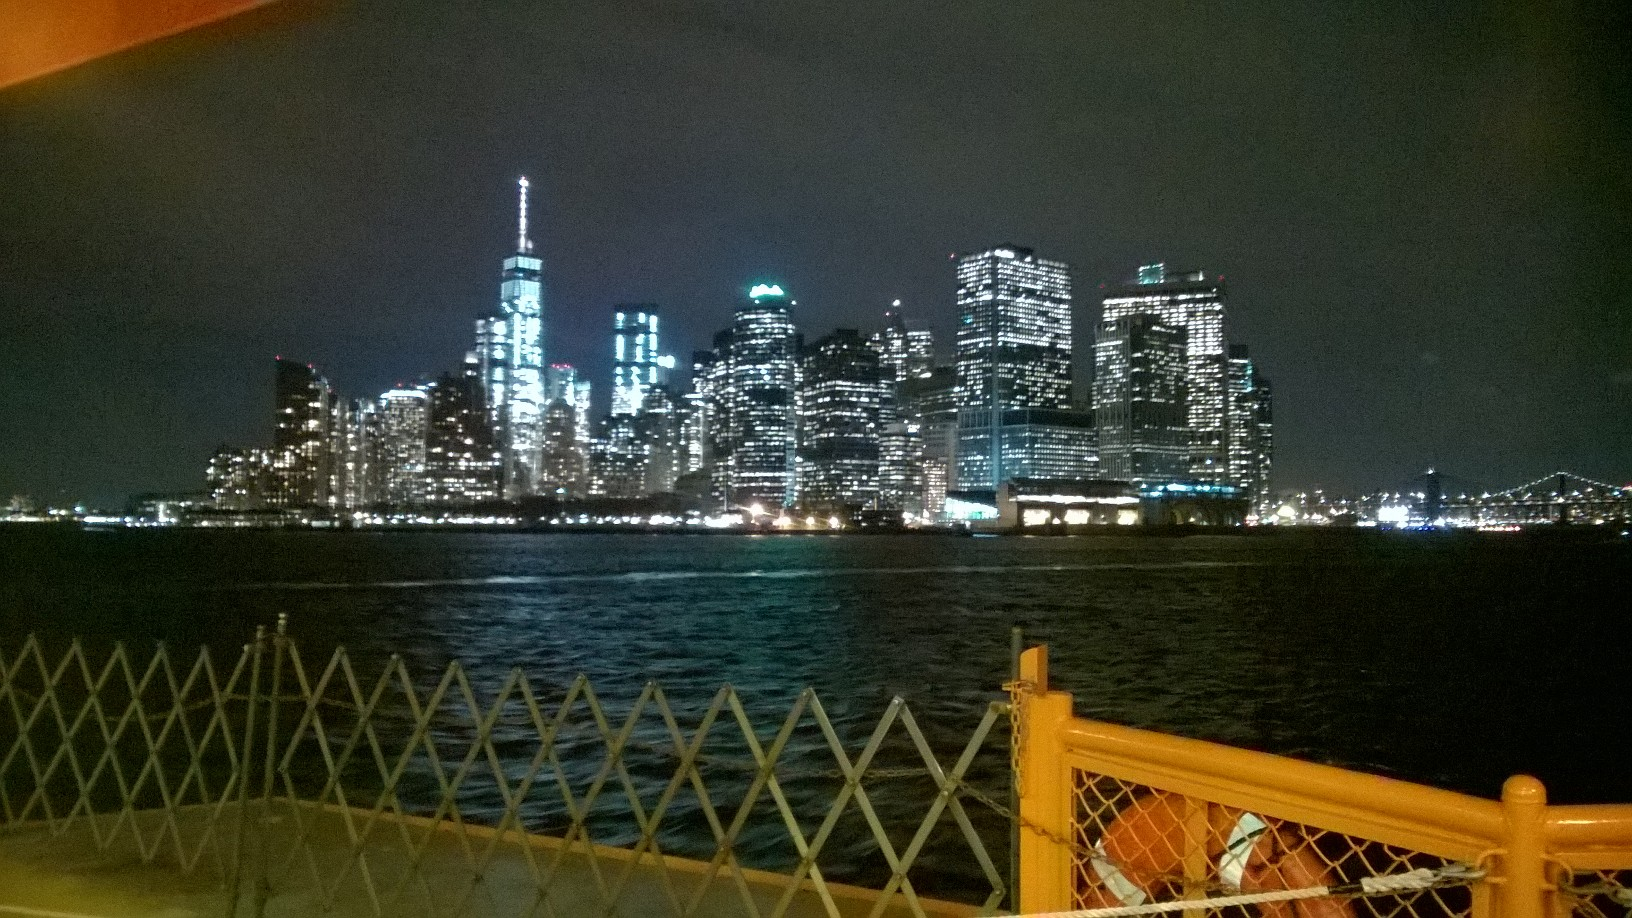 Night view from the Staten Island Ferry